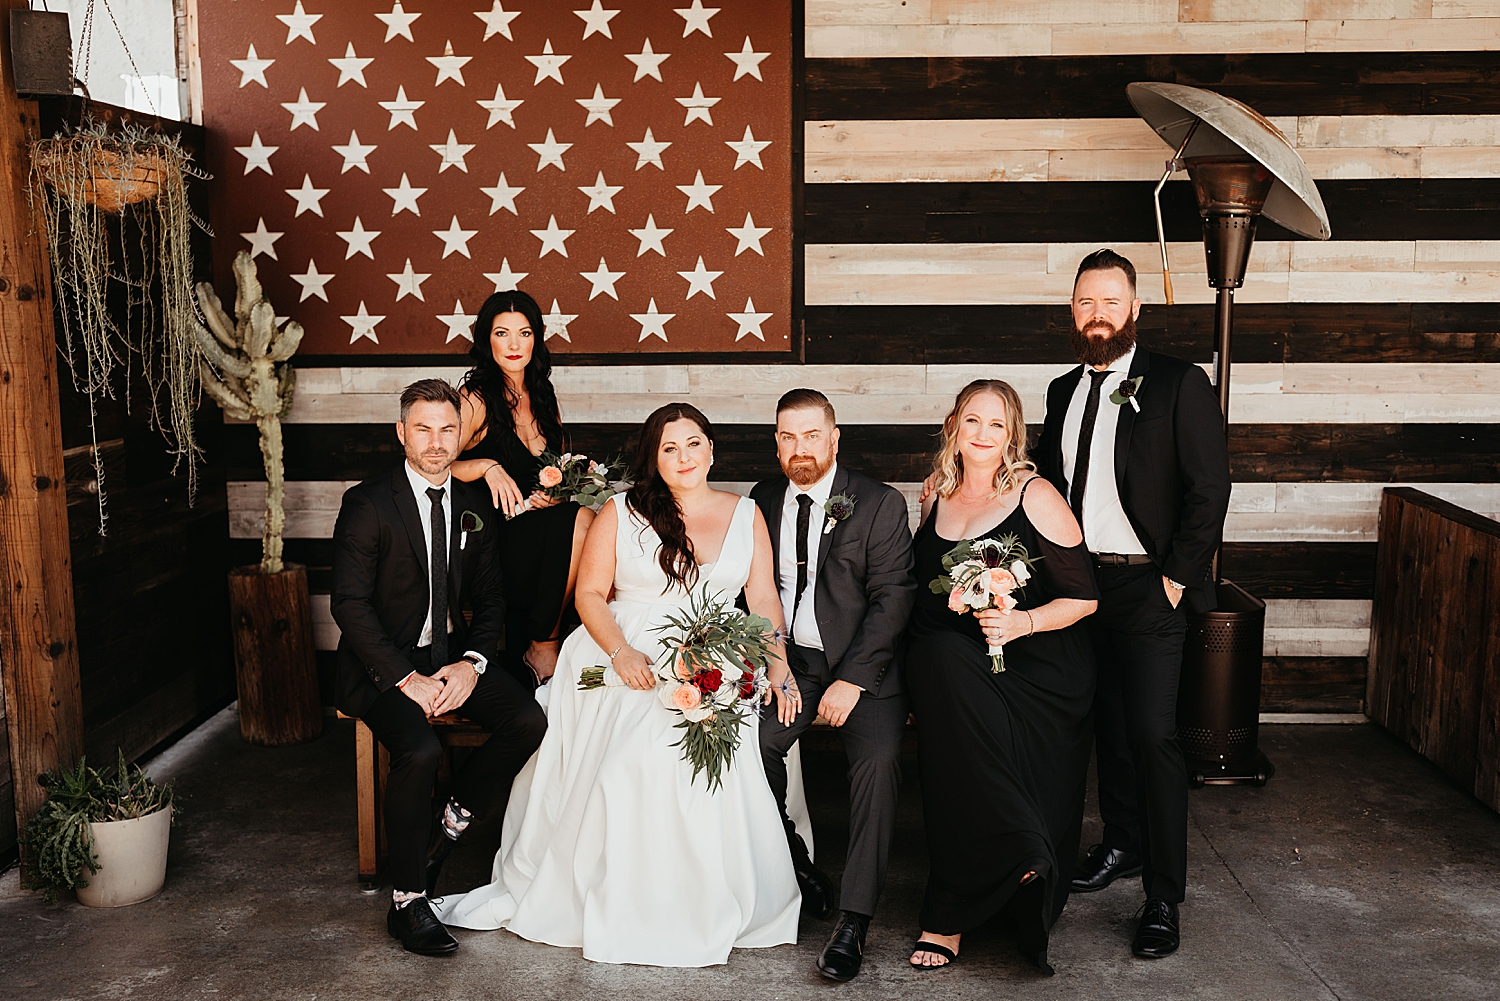 The-Wood-Shed-Booze-Brothers-Wedding-59.jpg